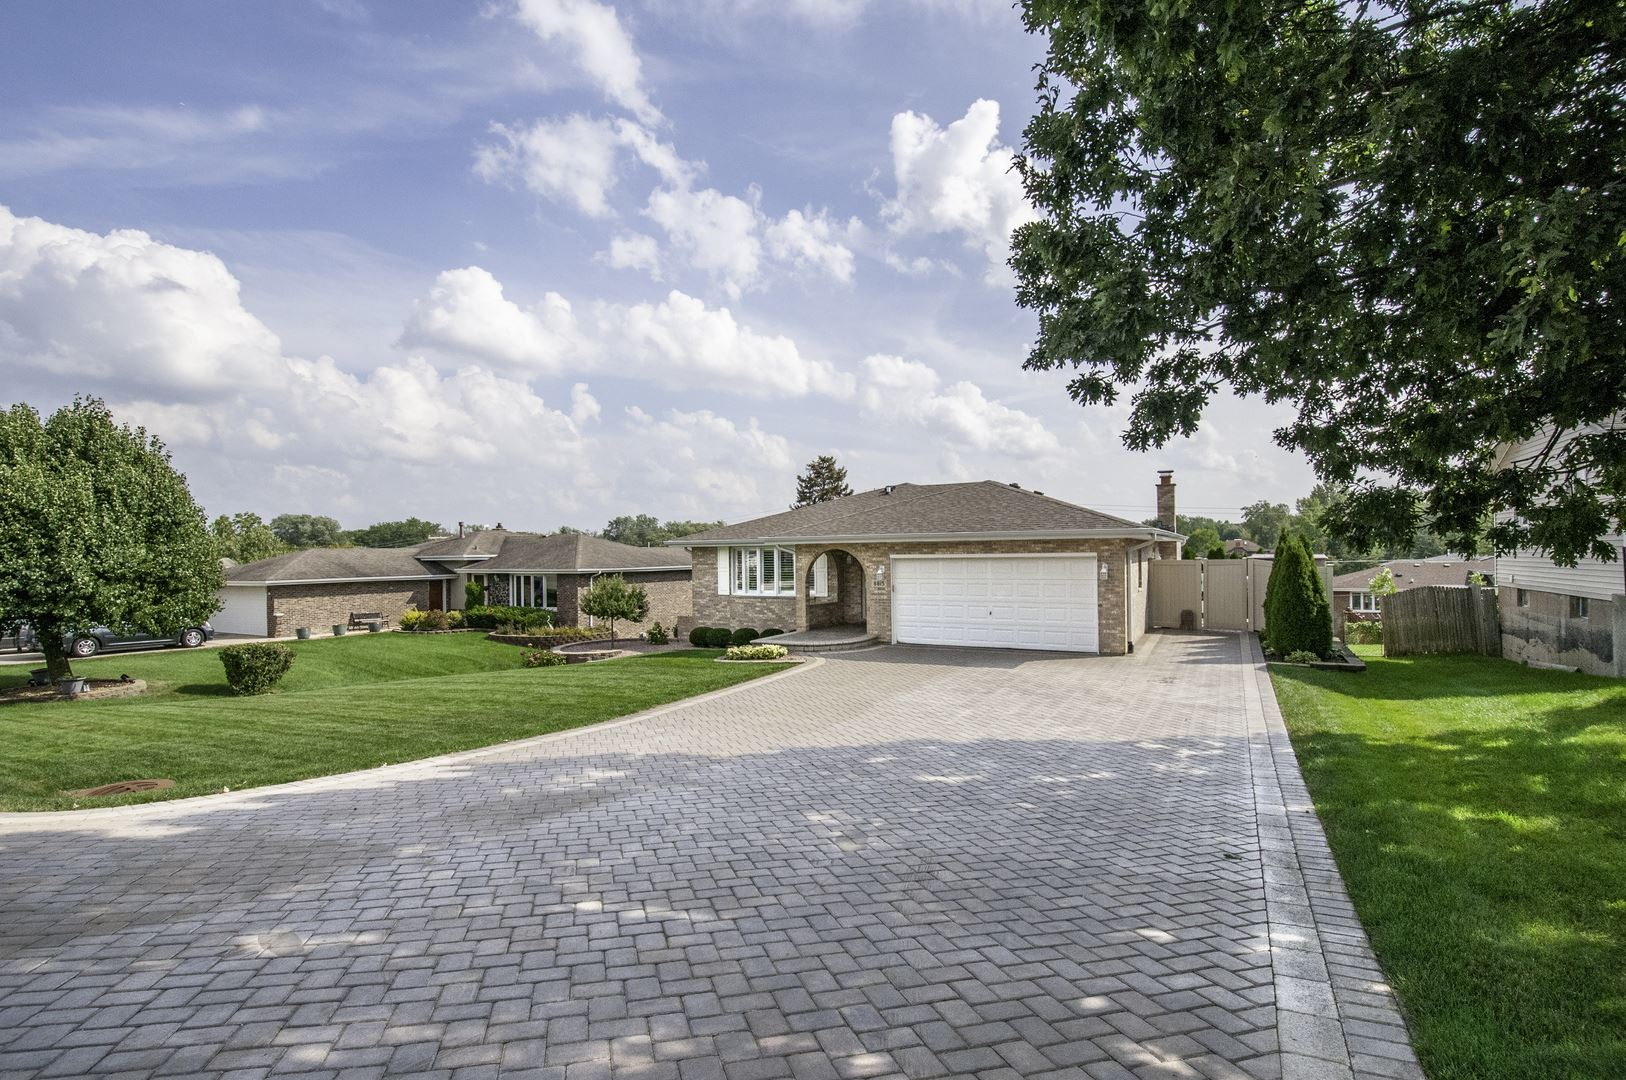 8815 W 98TH Place, Palos Hills, IL 60465 - #: 10677264